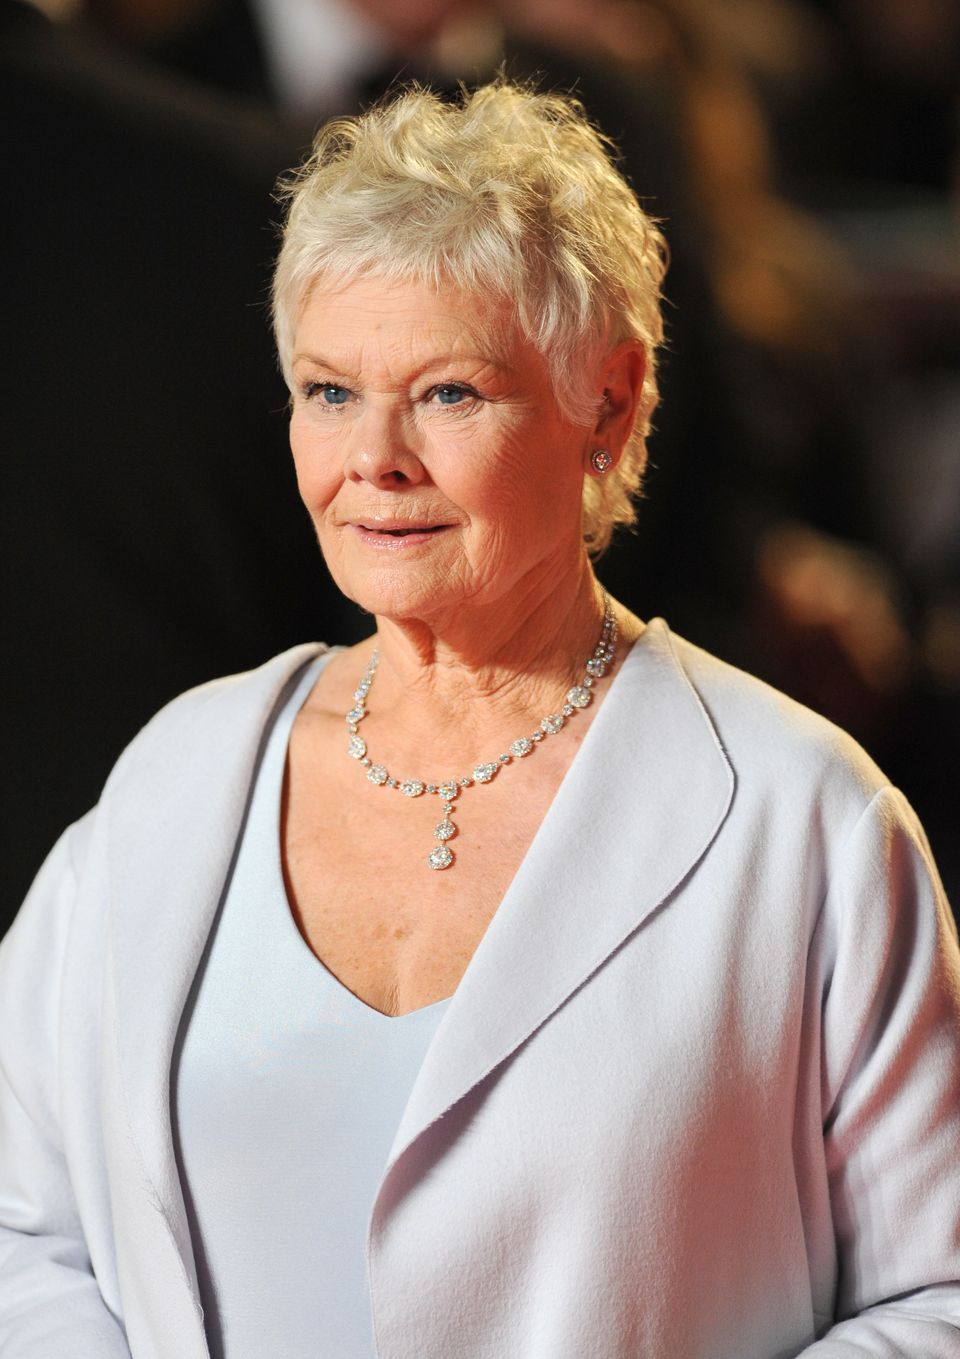 Dame Judi Dench arrives at the Royal World premiere of Skyfall at the Royal Albert Hall, London.